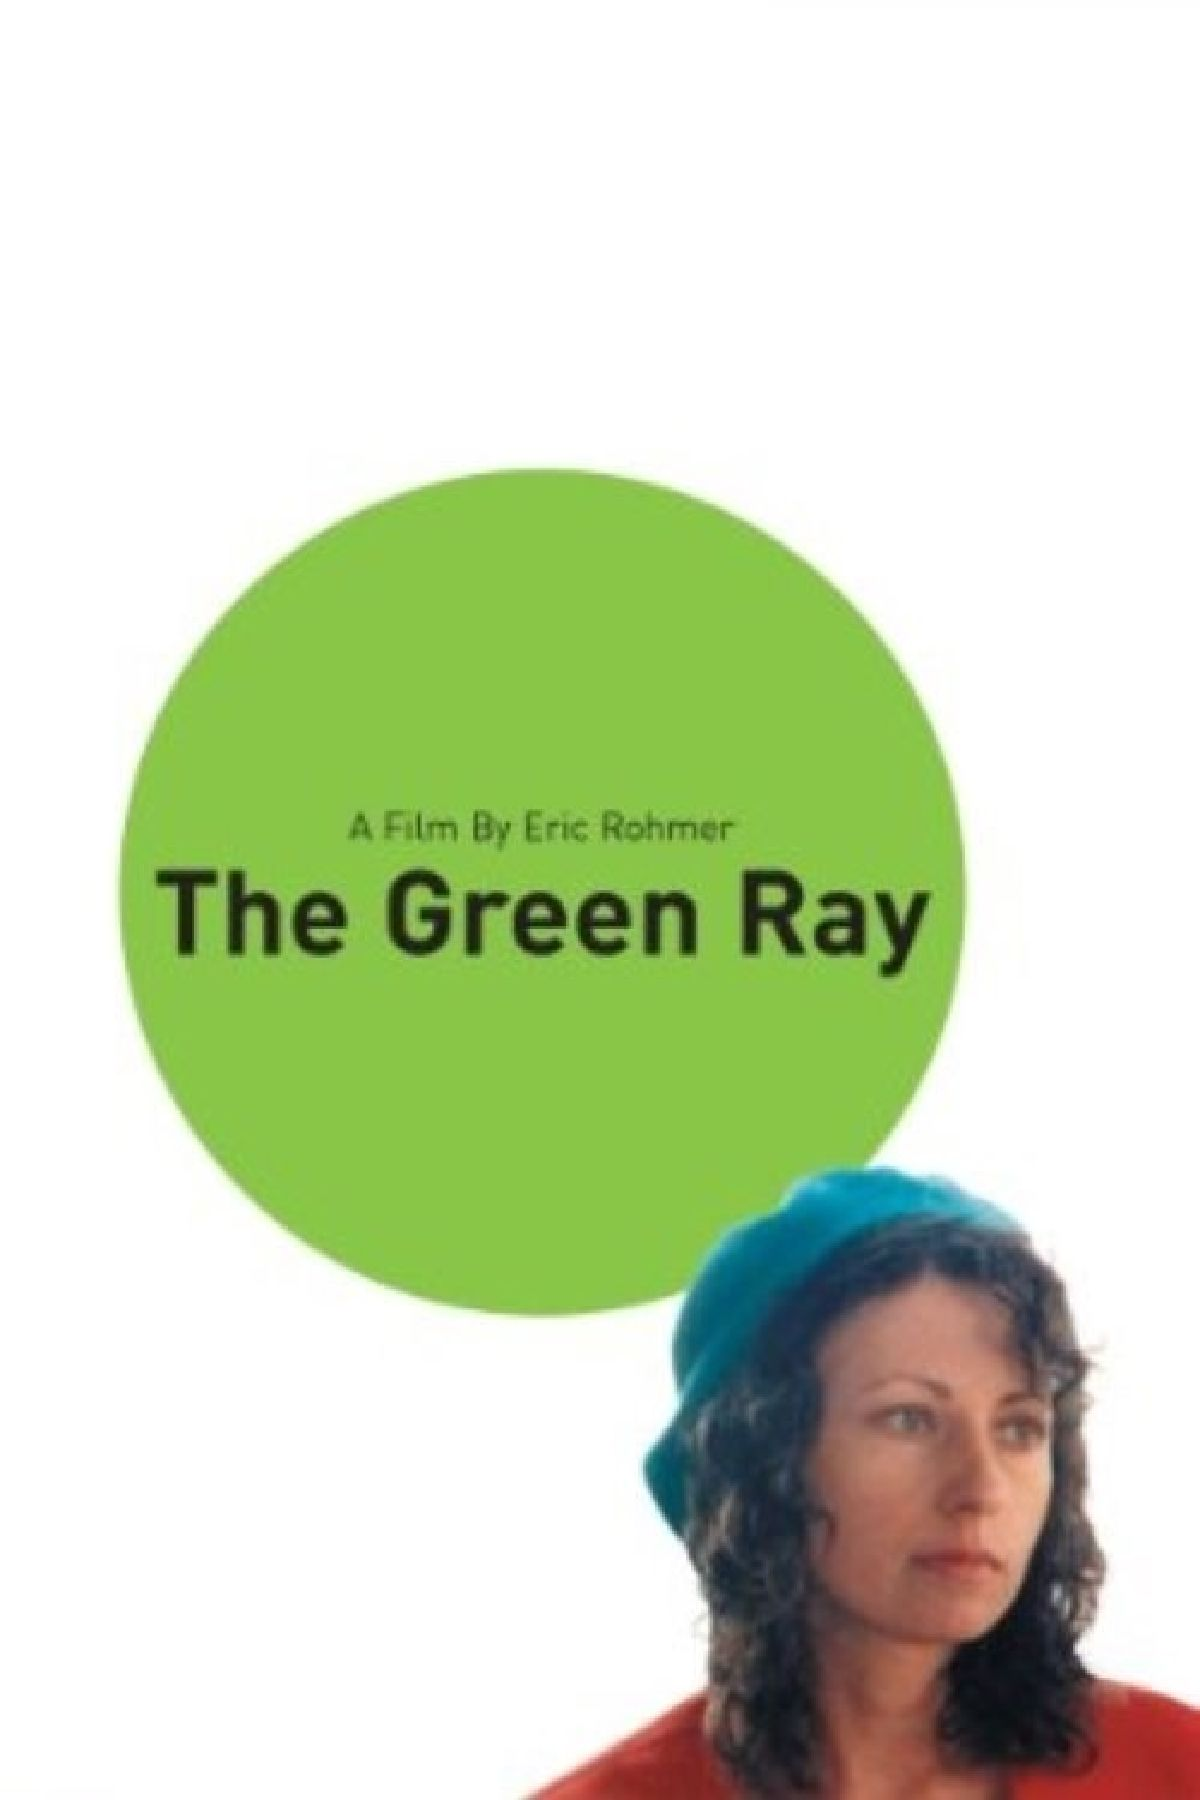 'The Green Ray' movie poster